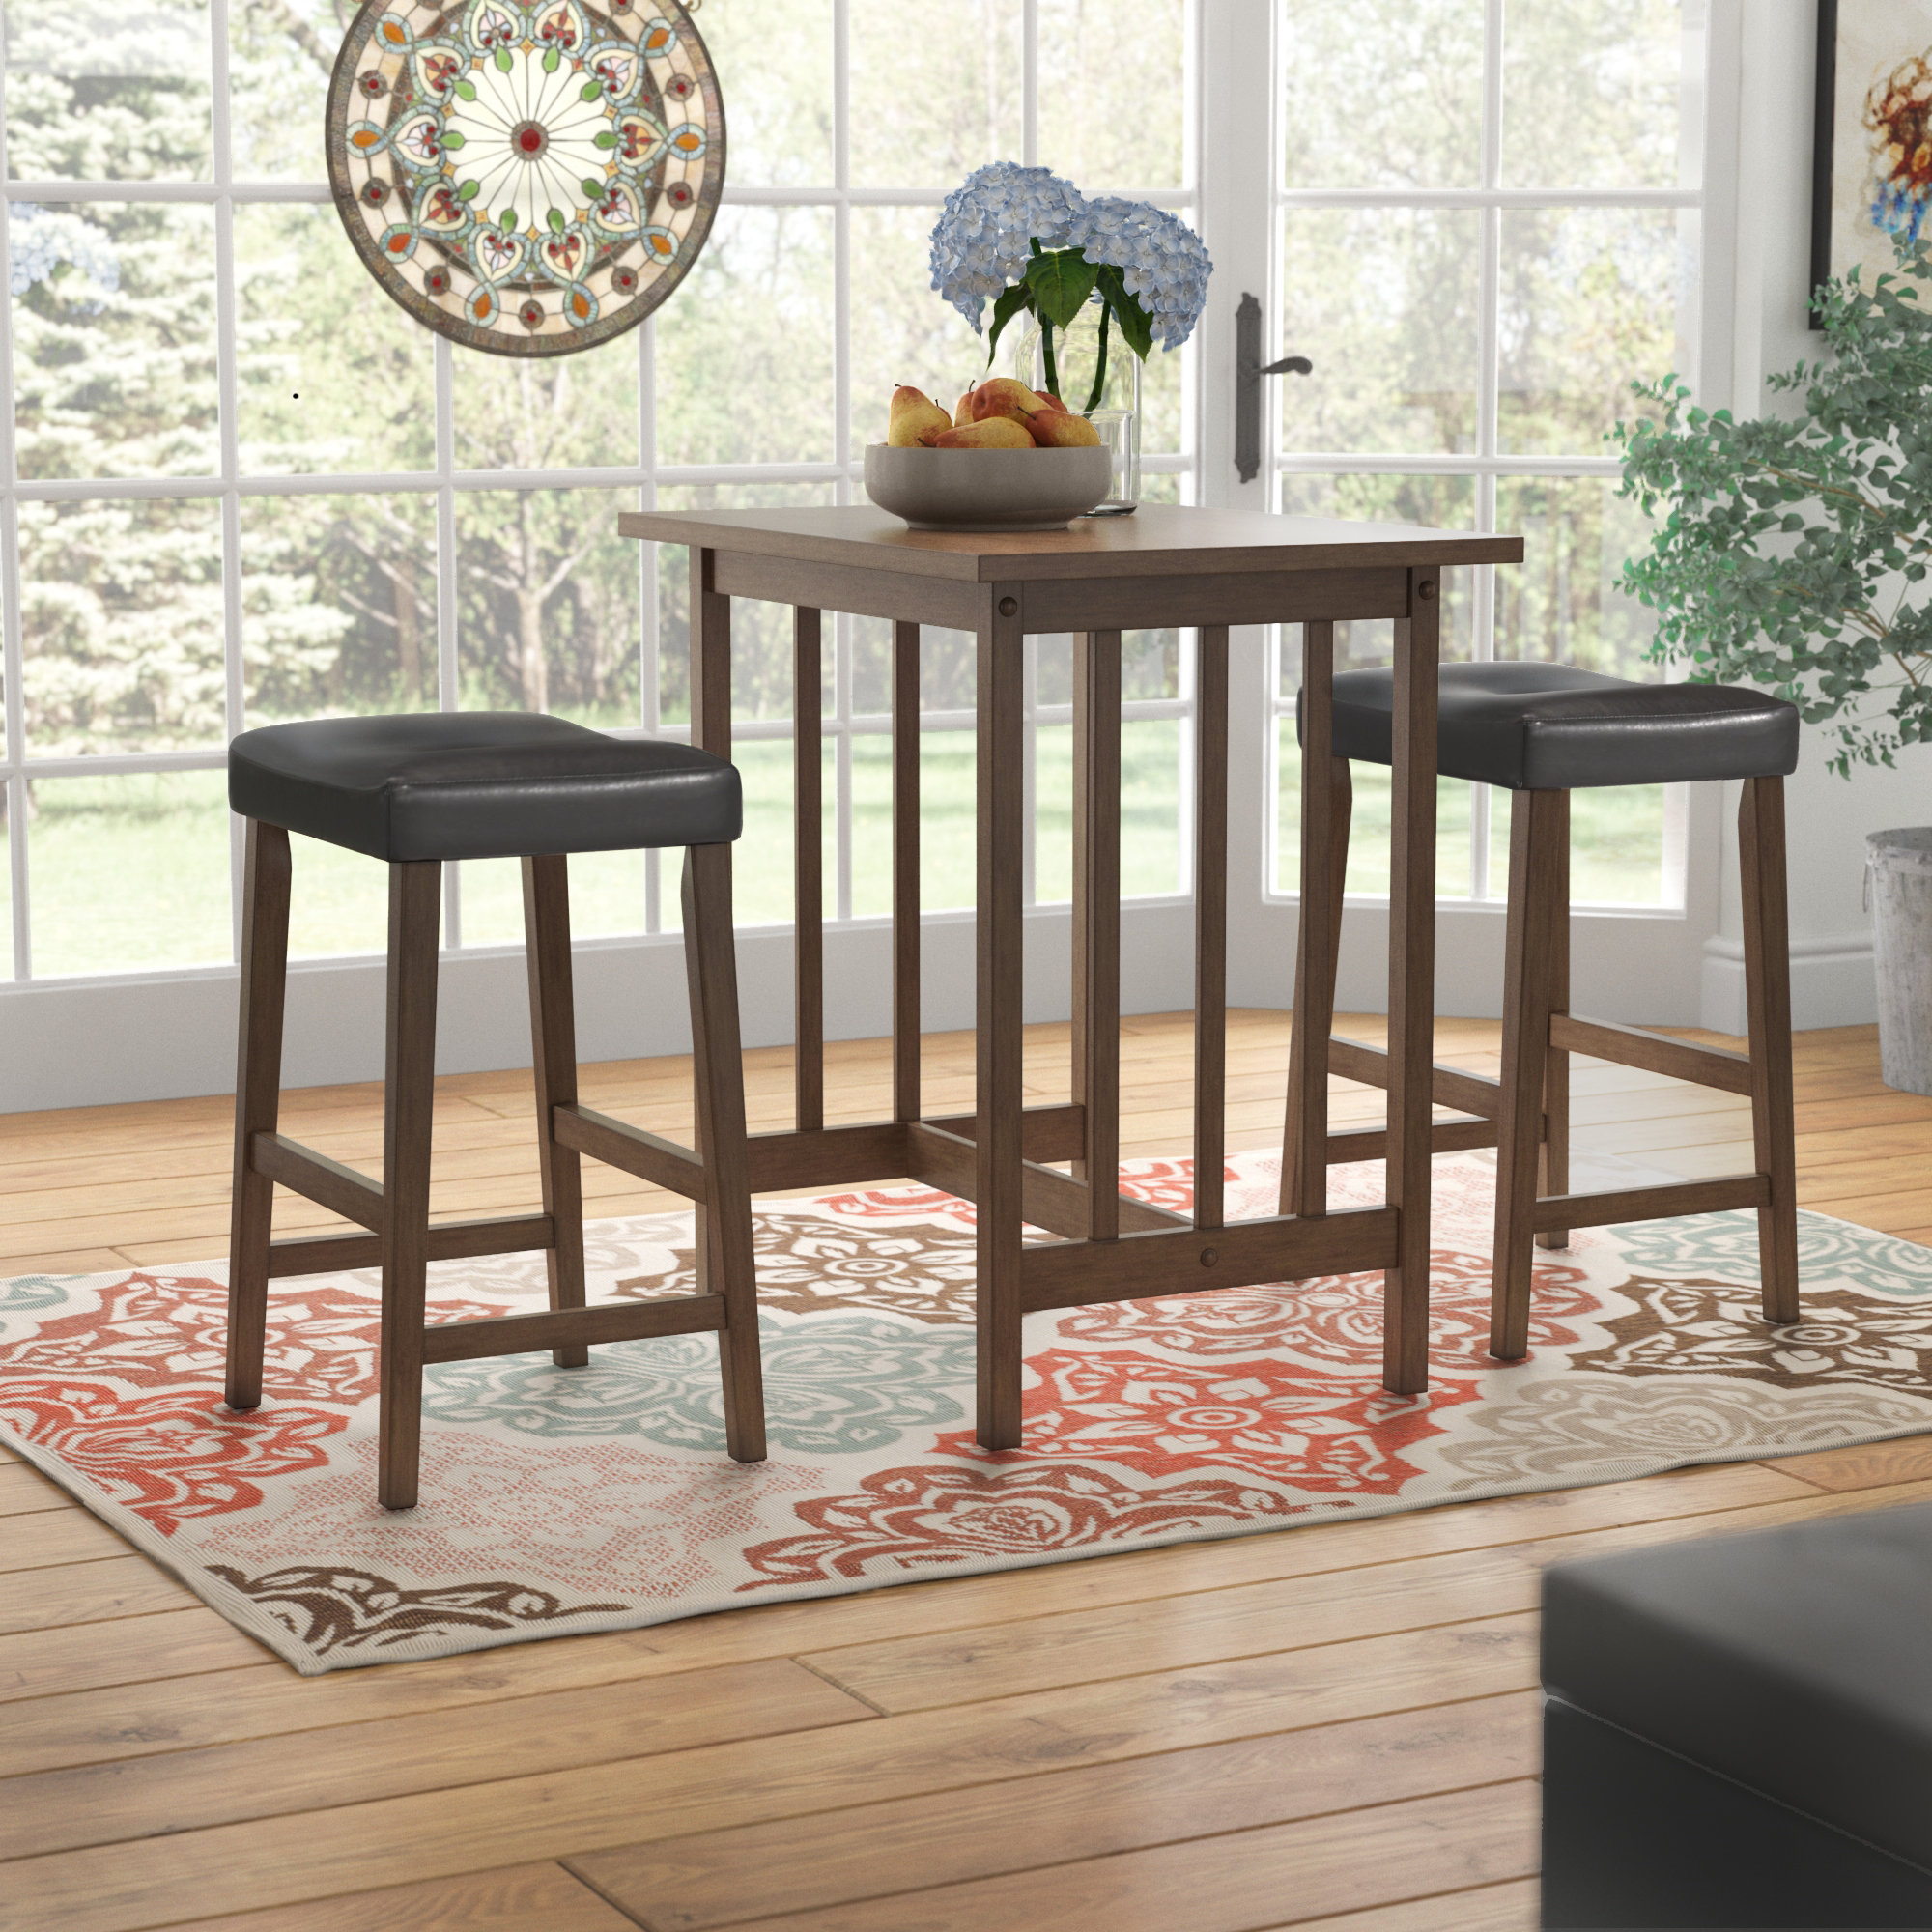 Hood Canal 3 Piece Dining Set Inside Most Up To Date Lonon 3 Piece Dining Sets (View 6 of 20)